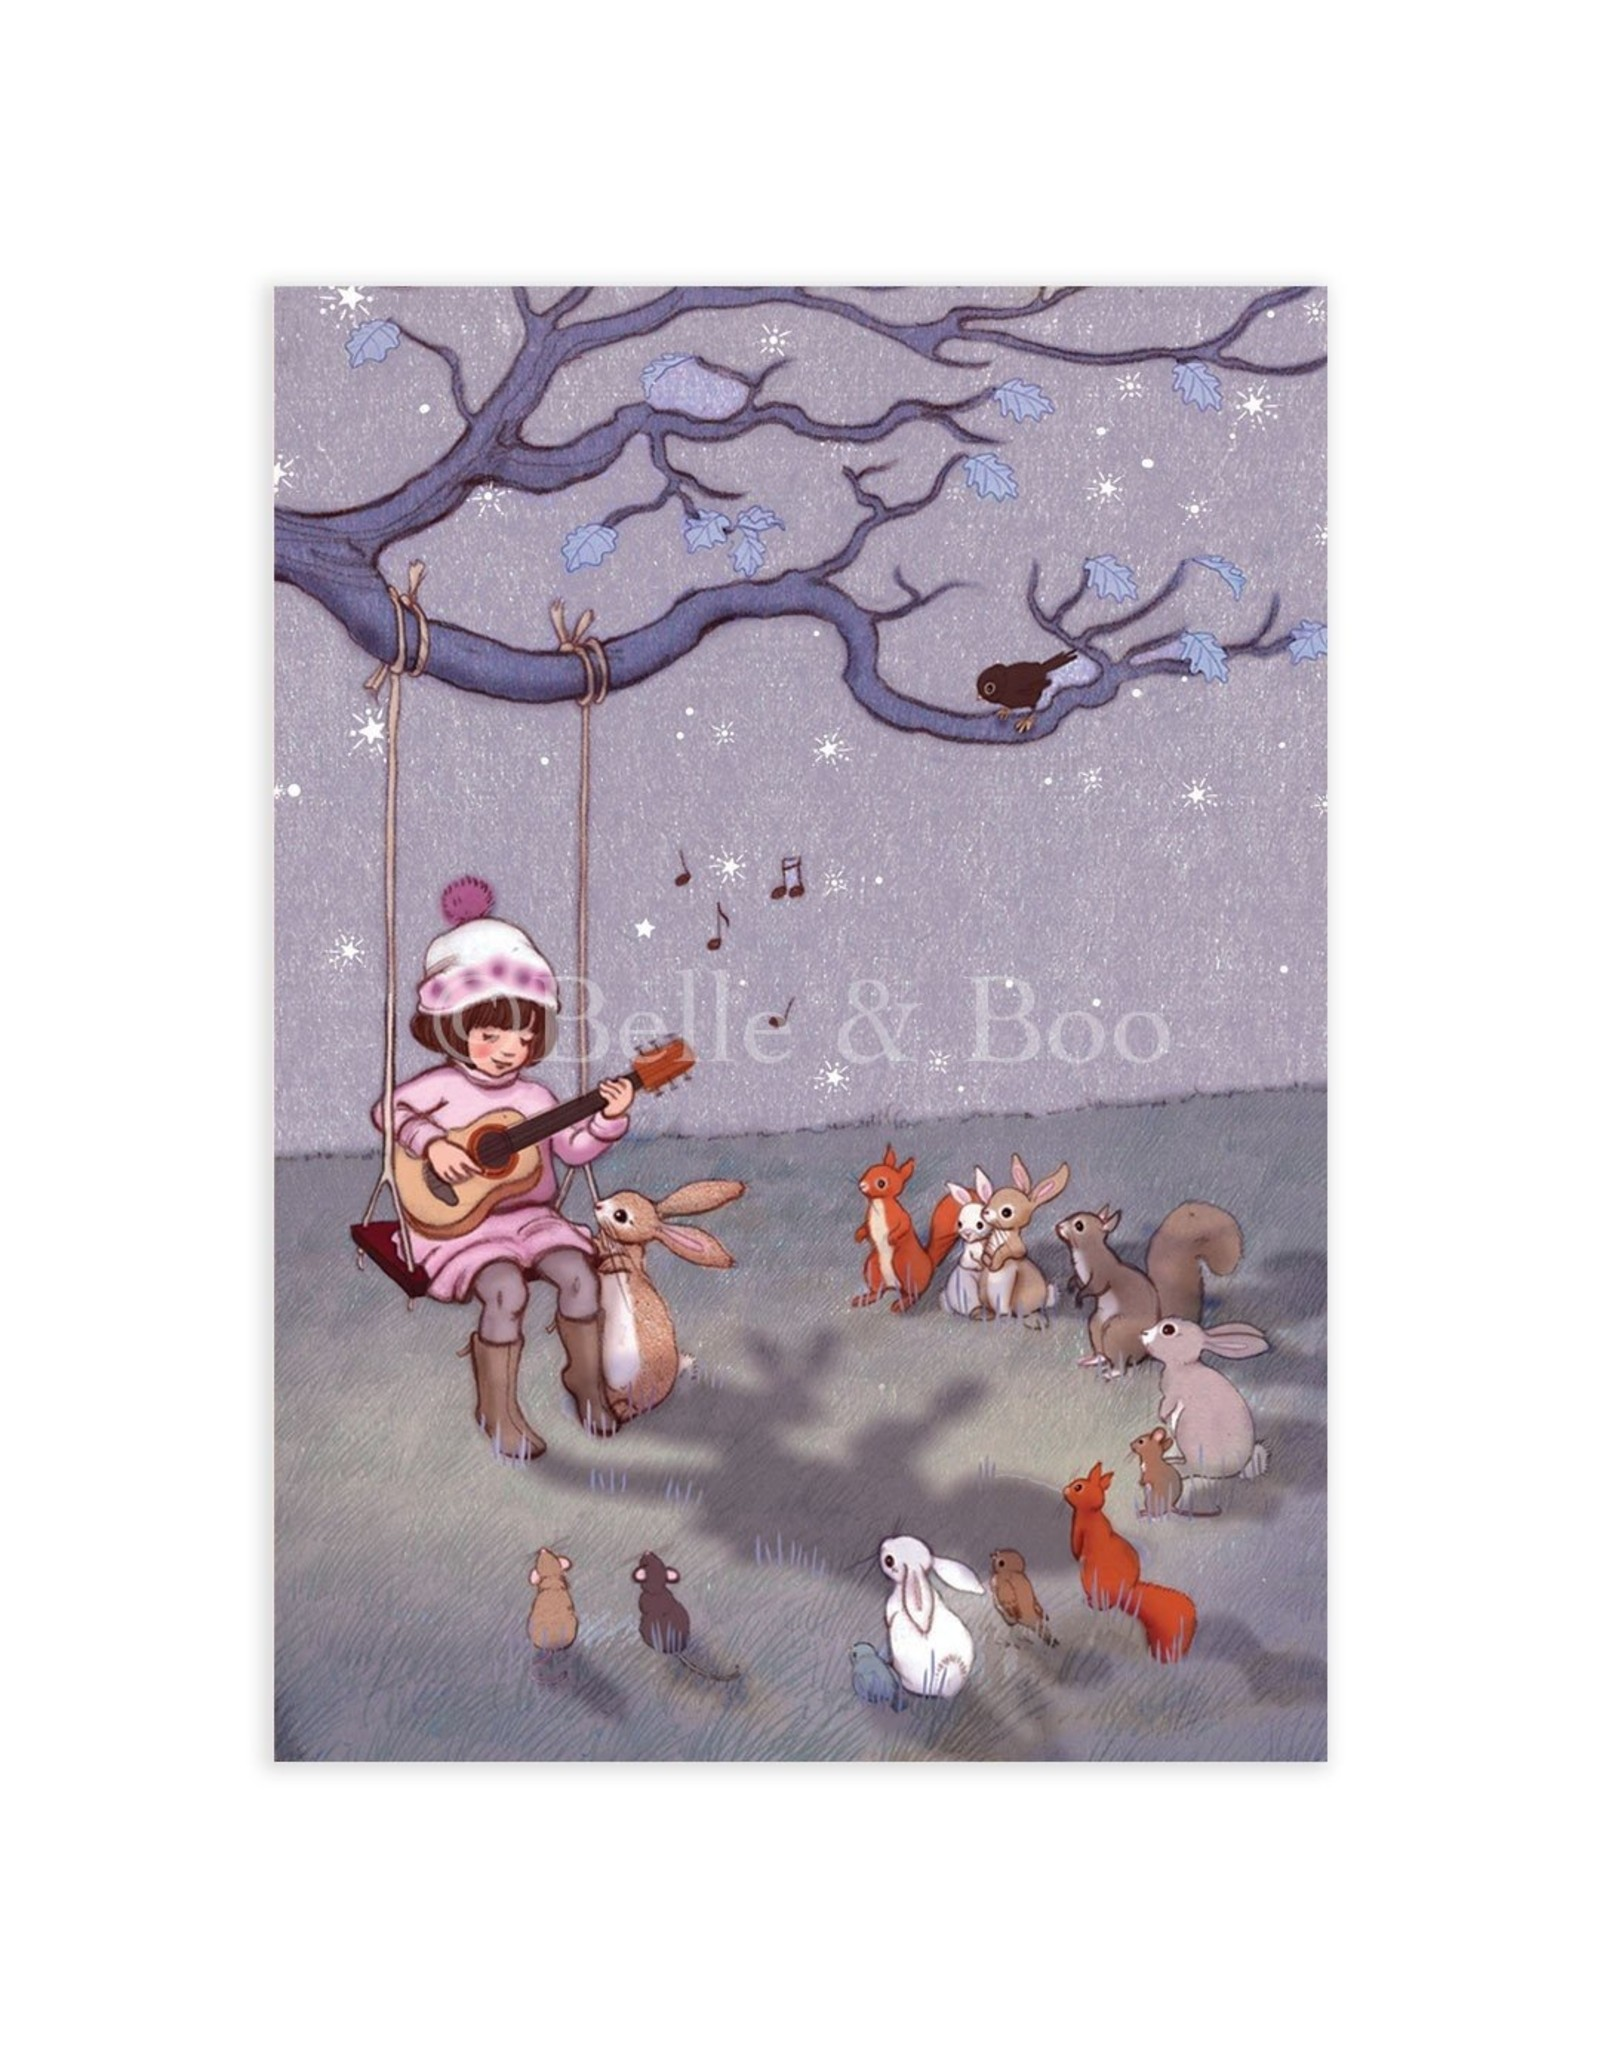 Belle & Boo card - lullaby